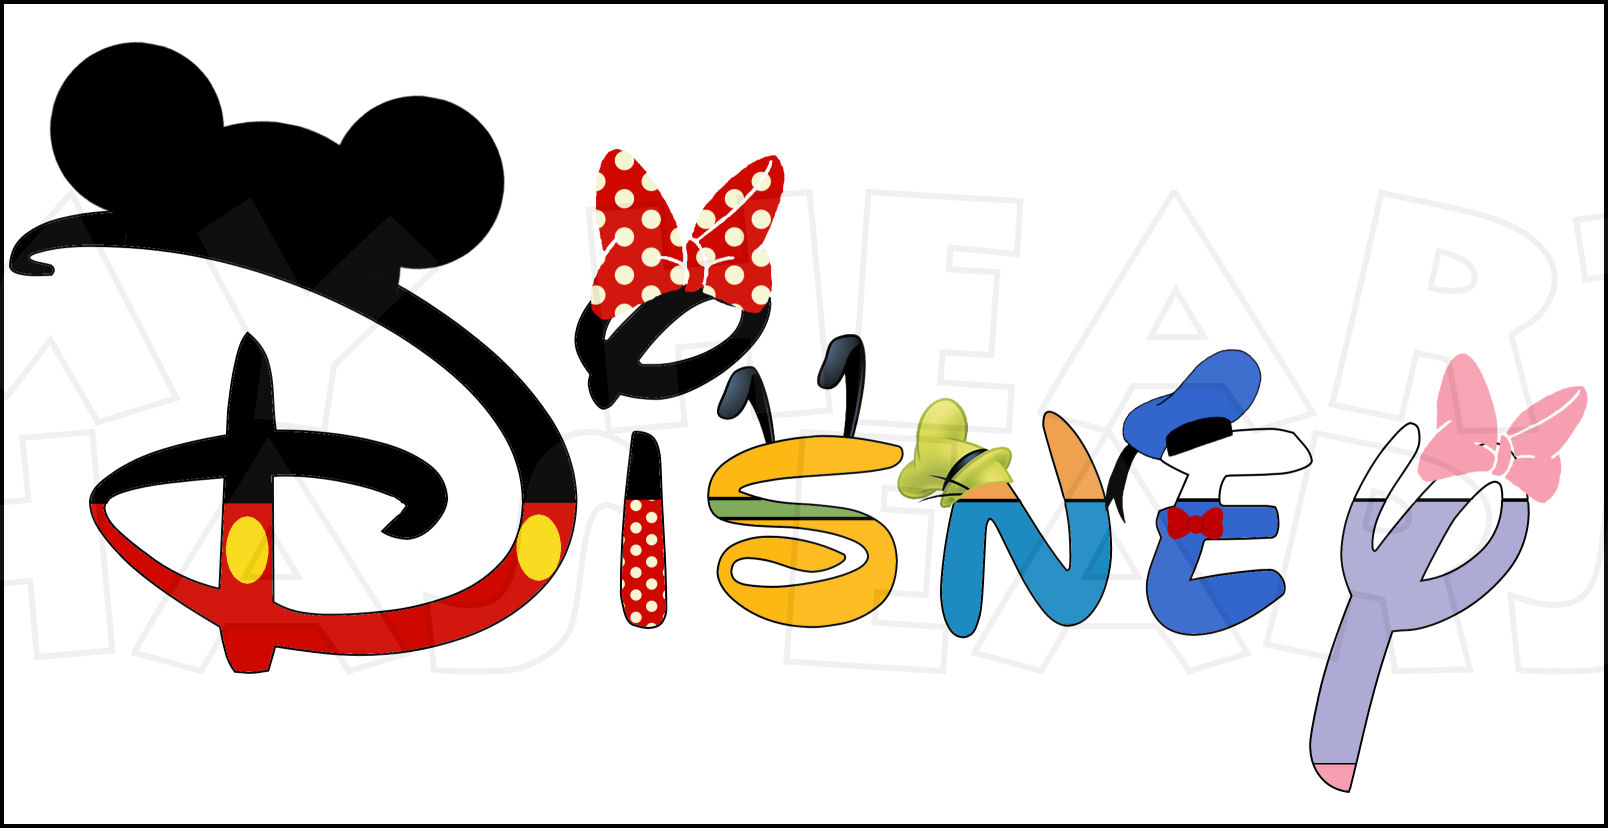 Disney character digital font clipart picture black and white library Disney character font clipart - ClipartFest picture black and white library